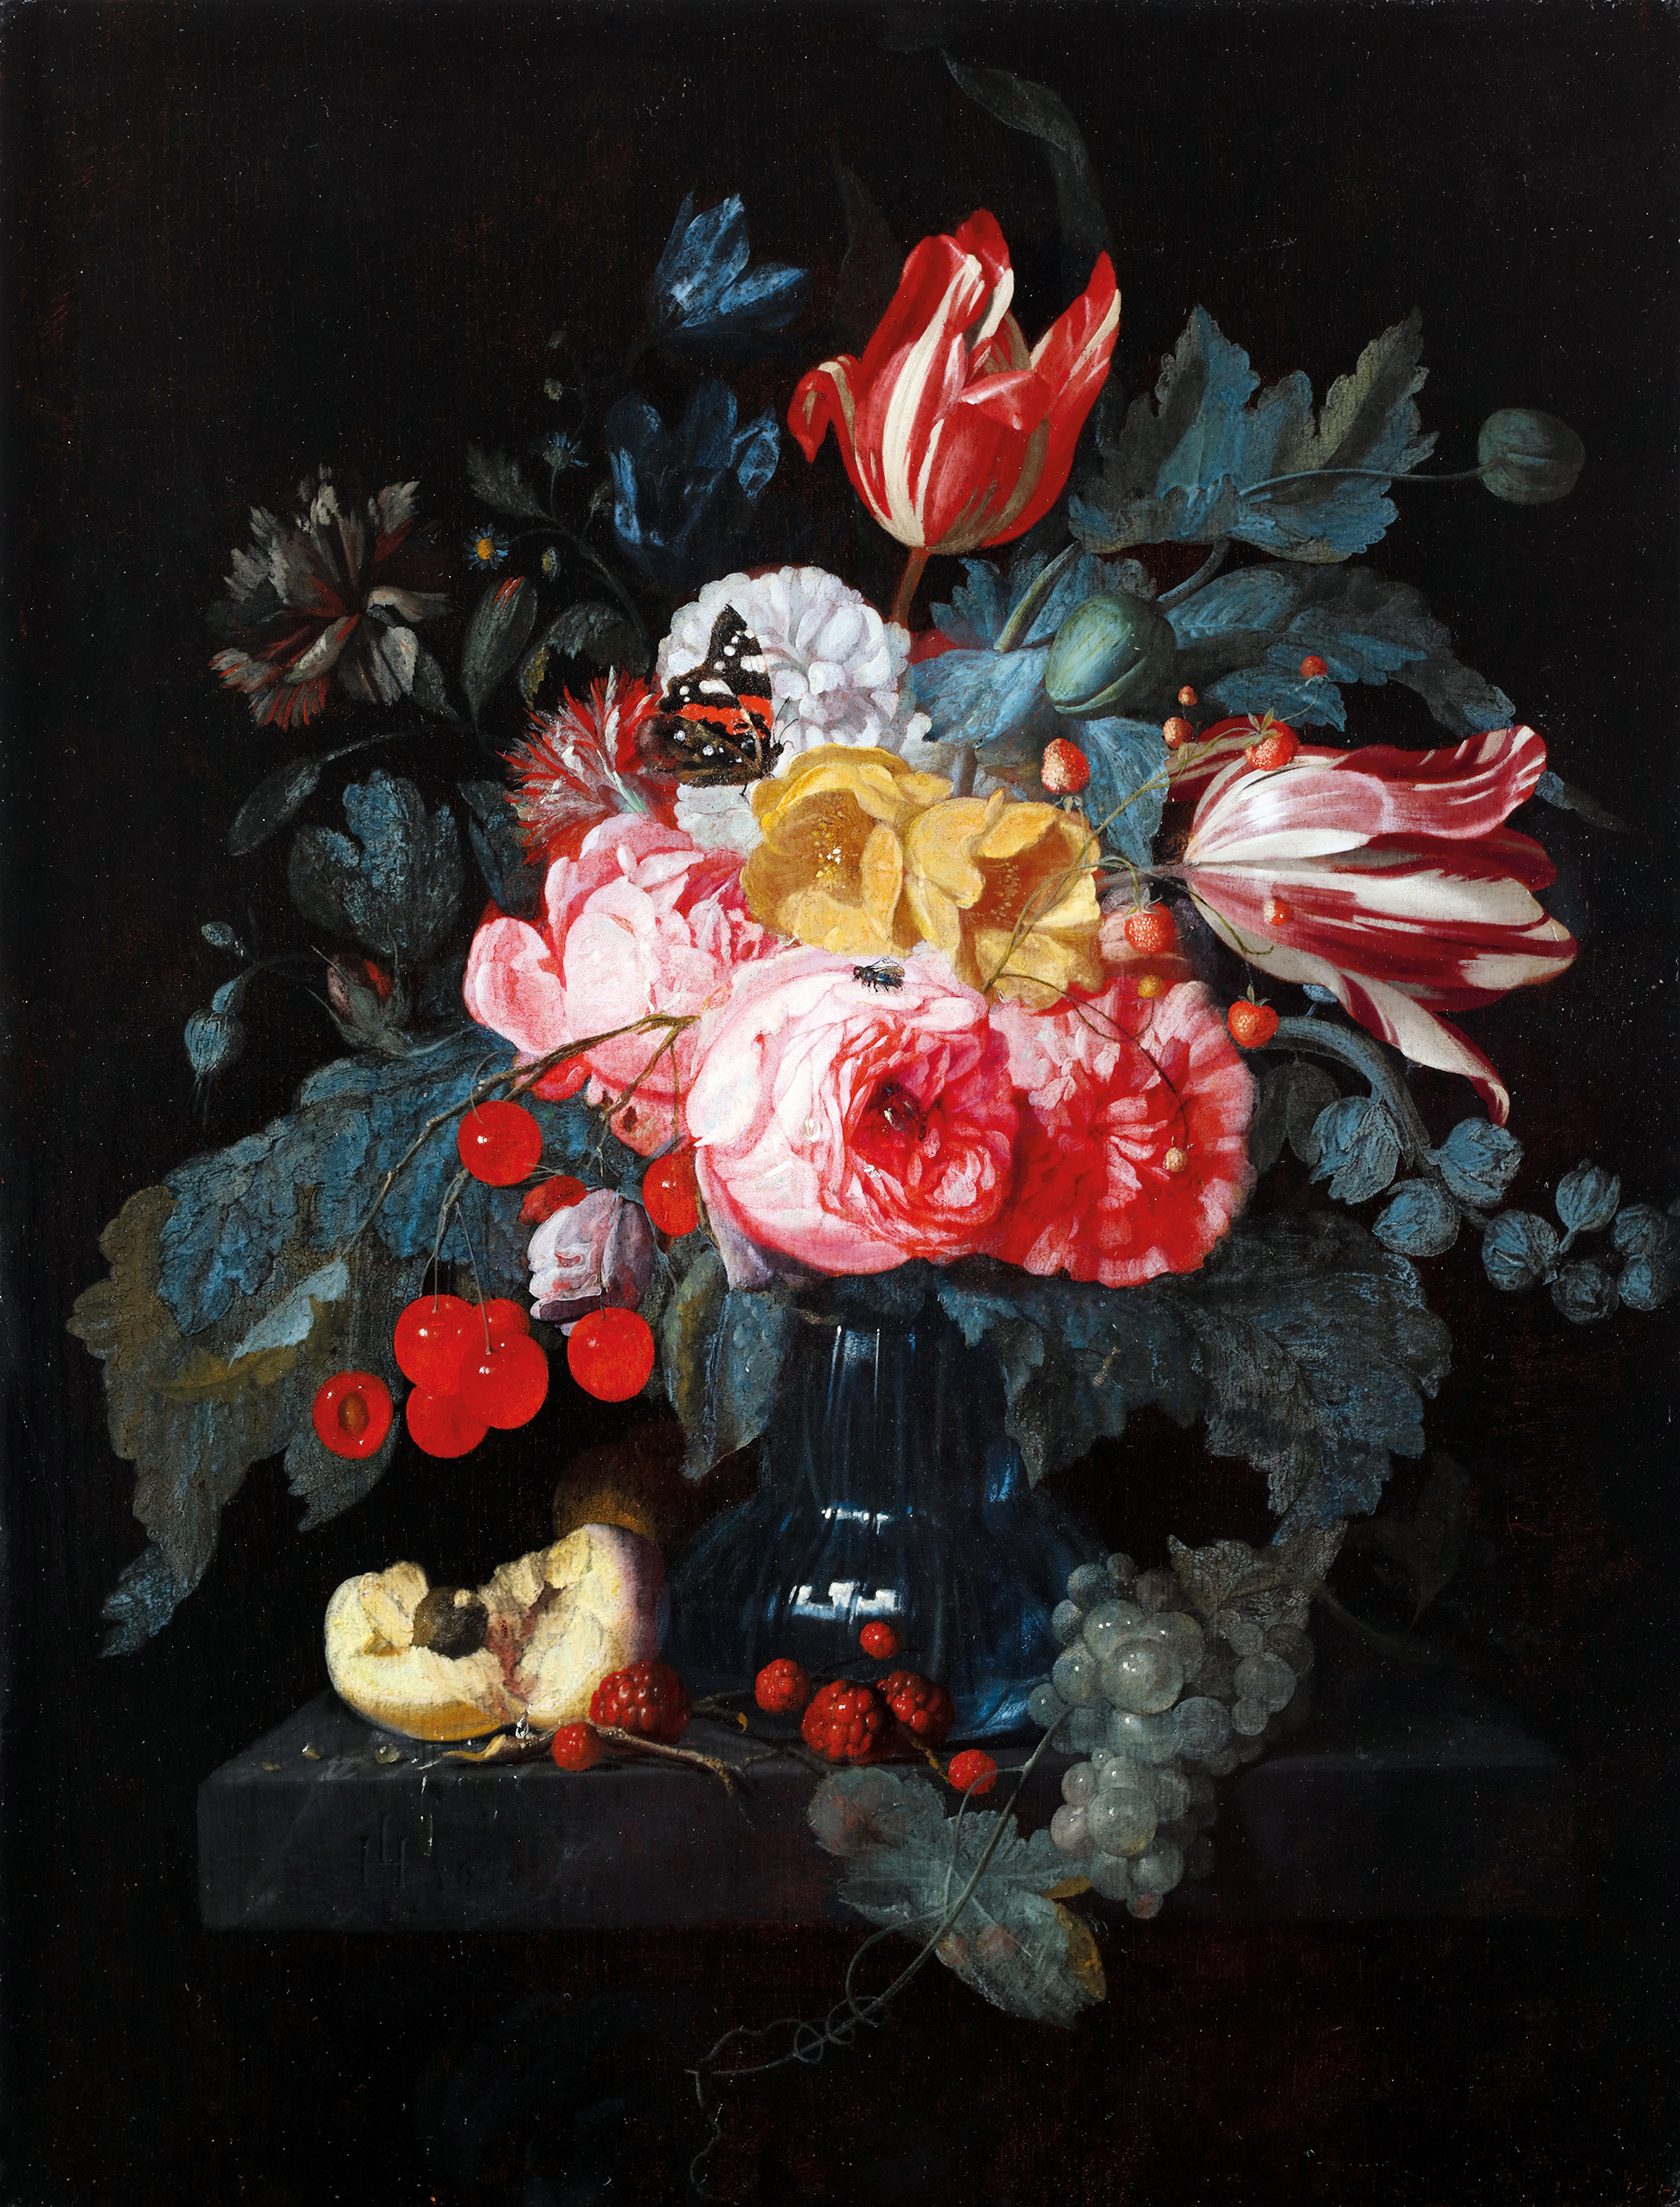 Flowers and fruits in a vase on a table ledge